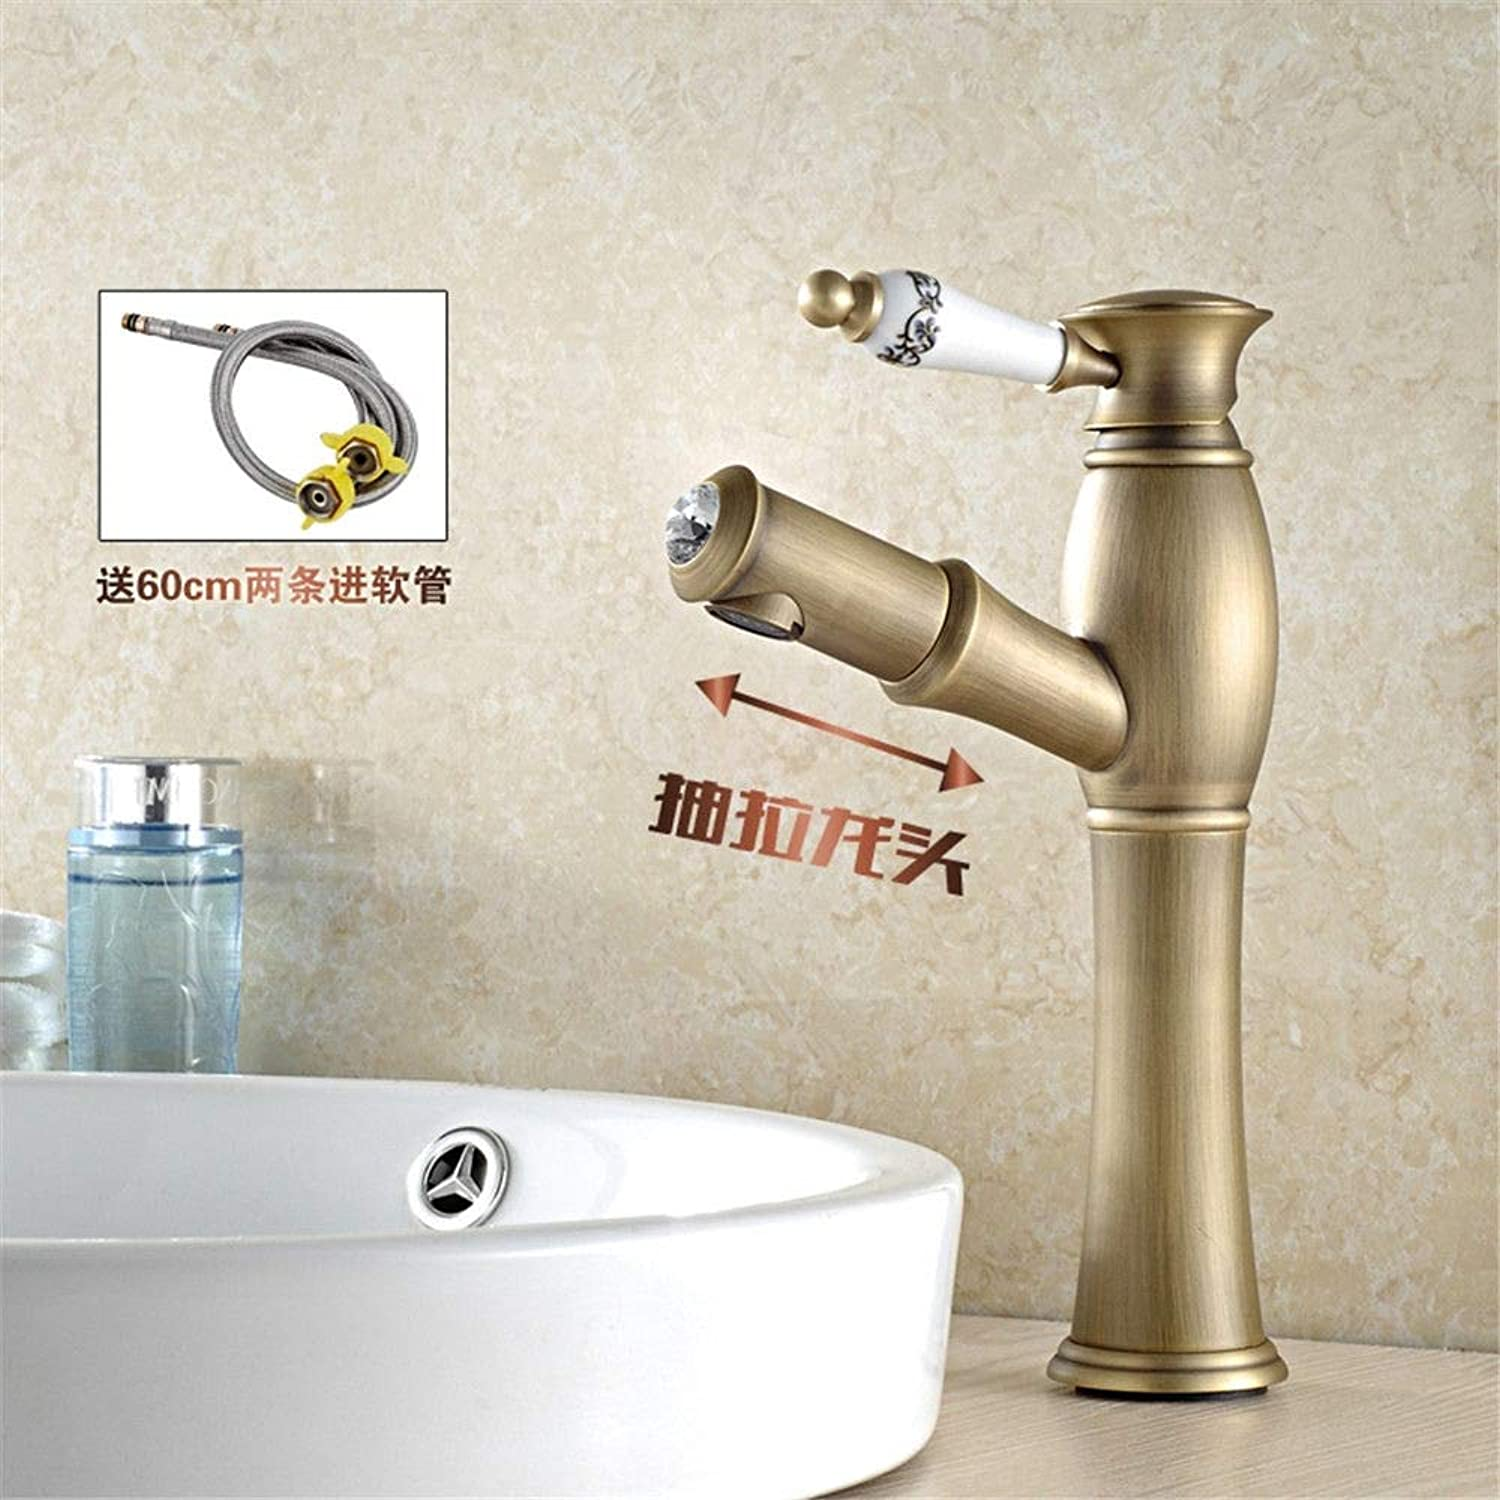 Hlluya Professional Sink Mixer Tap Kitchen Faucet Antique and cold water faucets full copper antique faucet,I